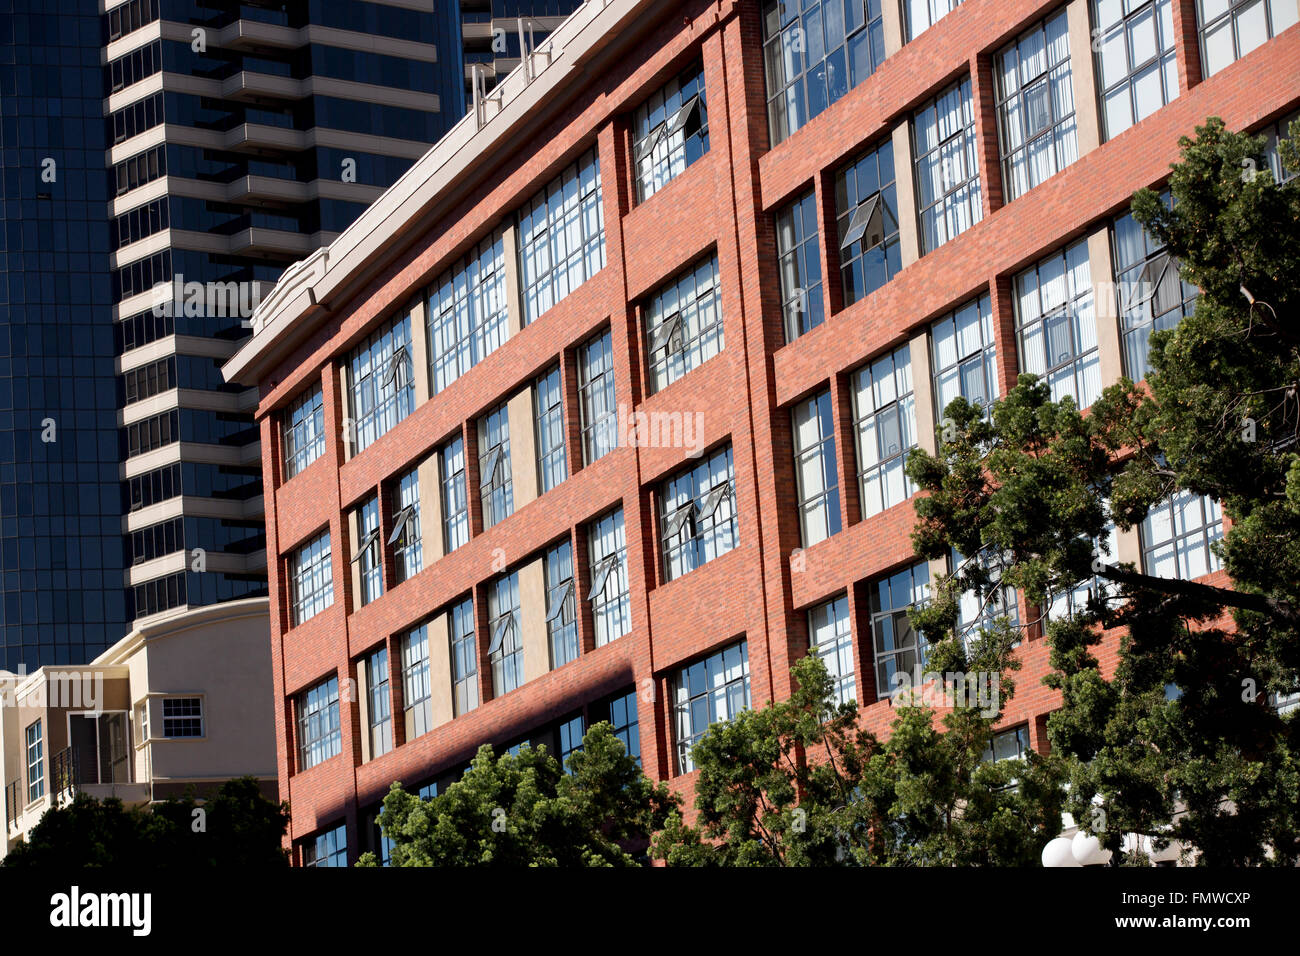 Loft building, Gaslamp Quarter, San Diego California USA - Stock Image